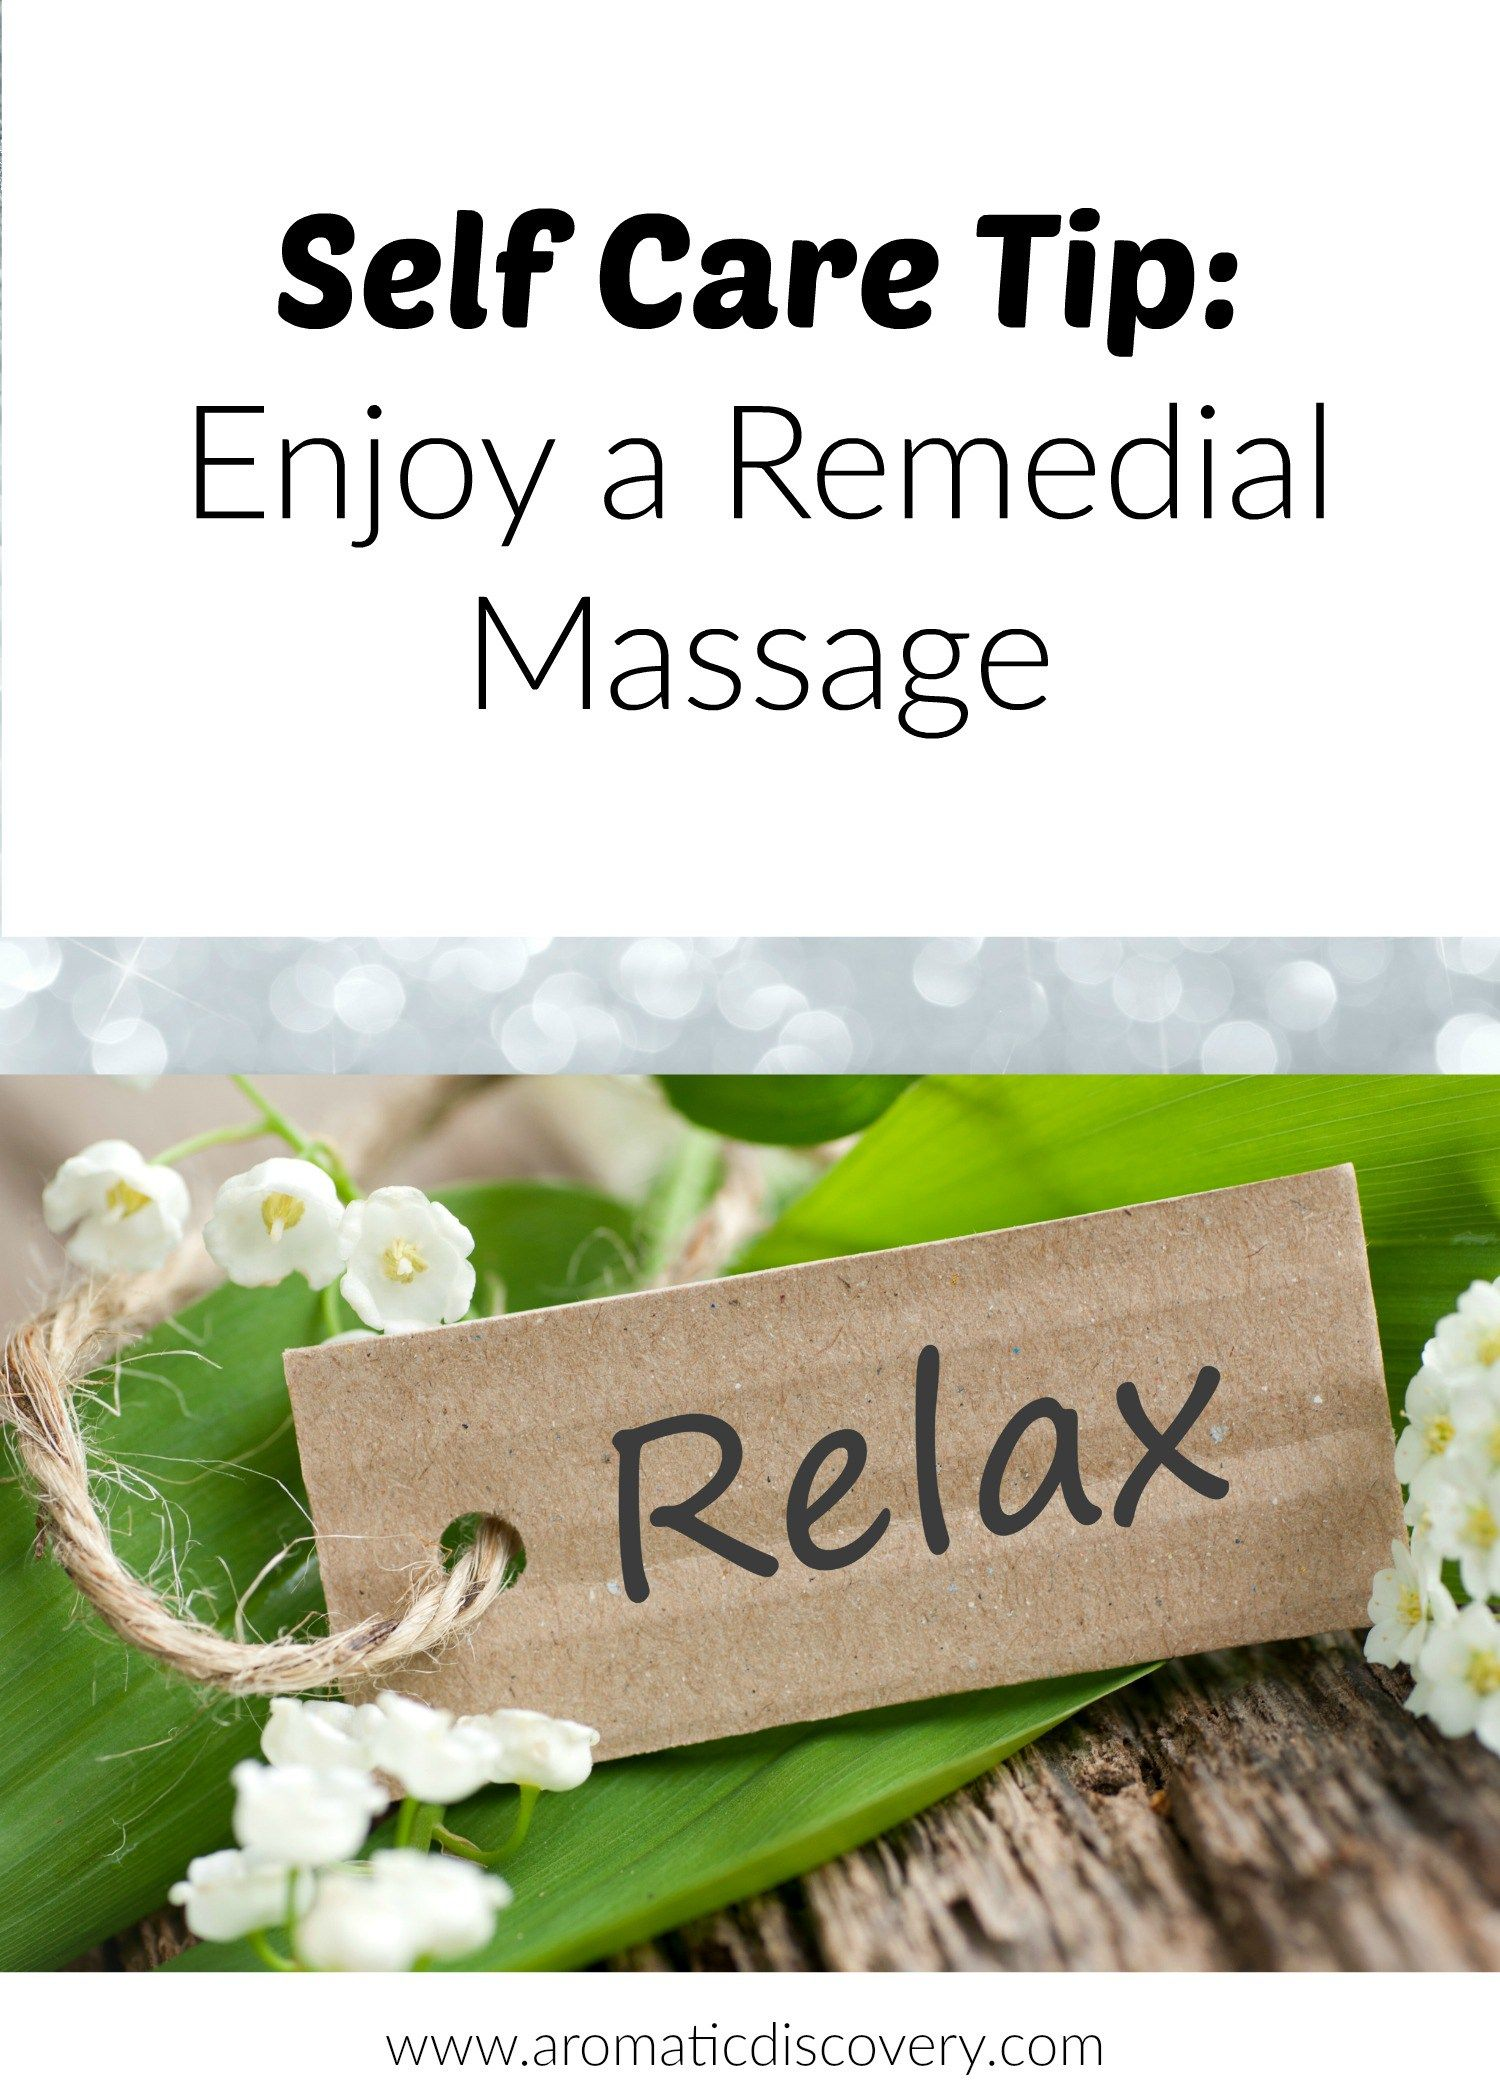 What is Remedial Massage and why should I get one